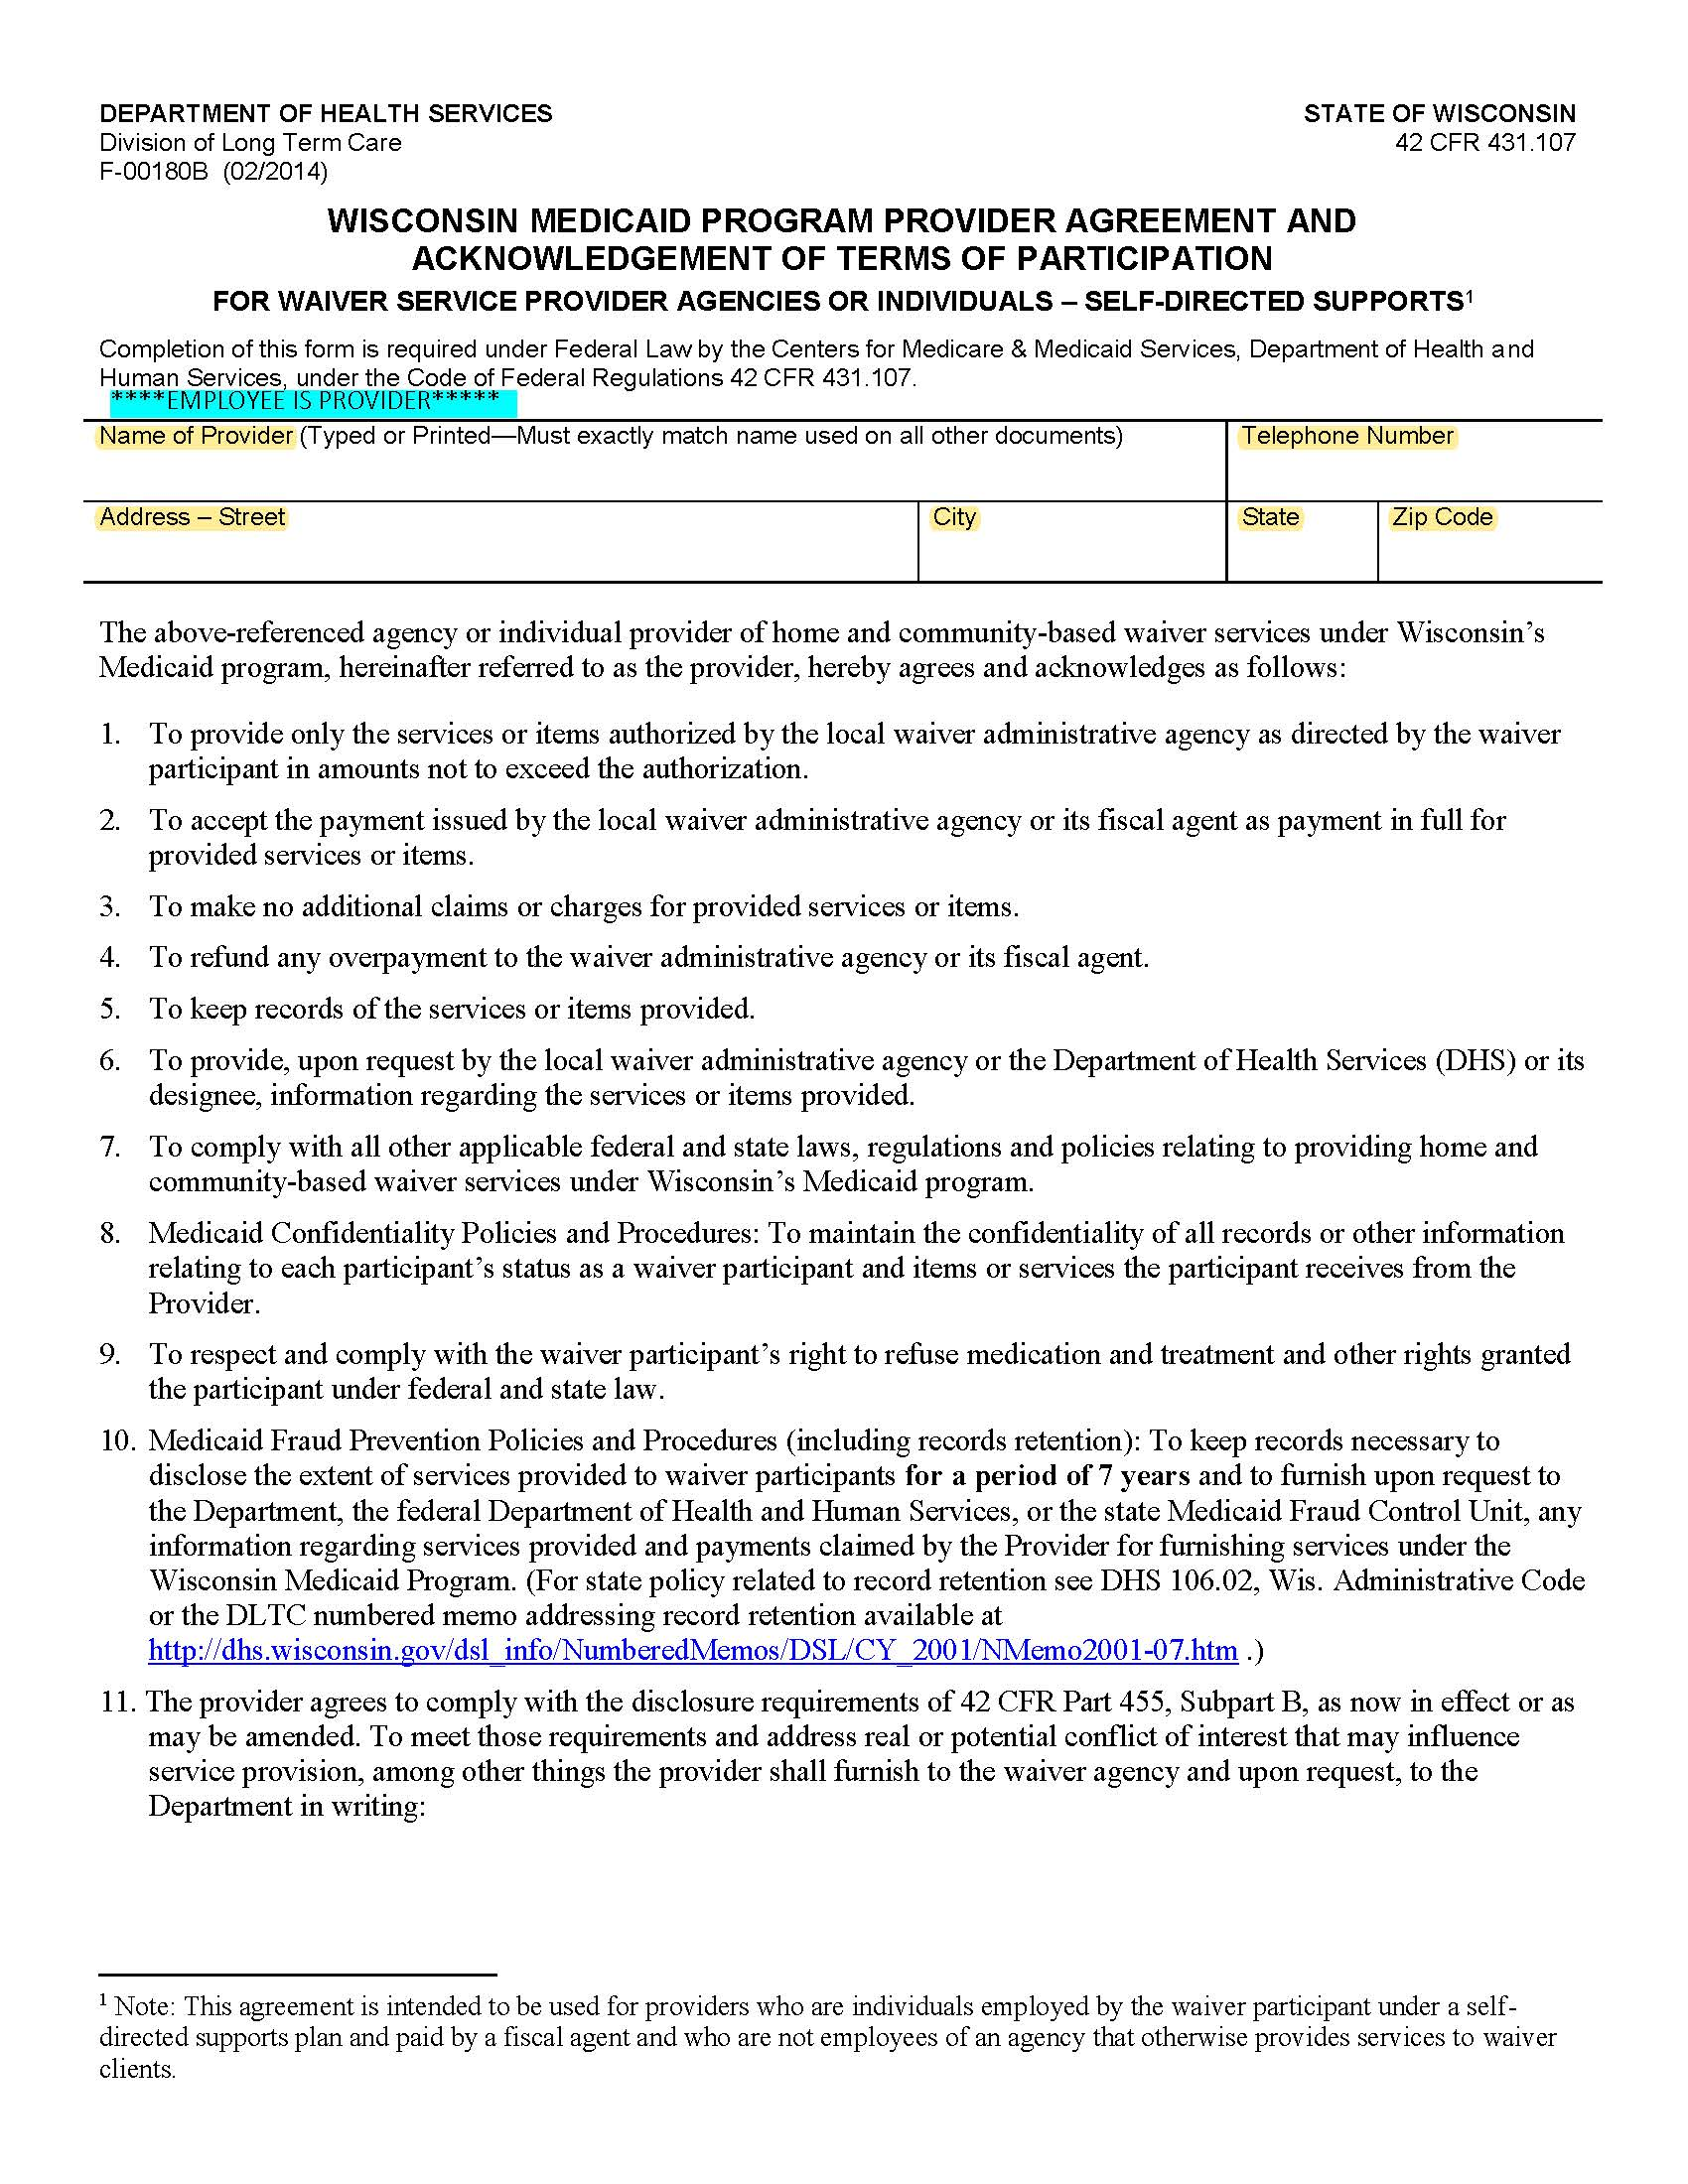 Medicaid Provider Agreement for CLTS